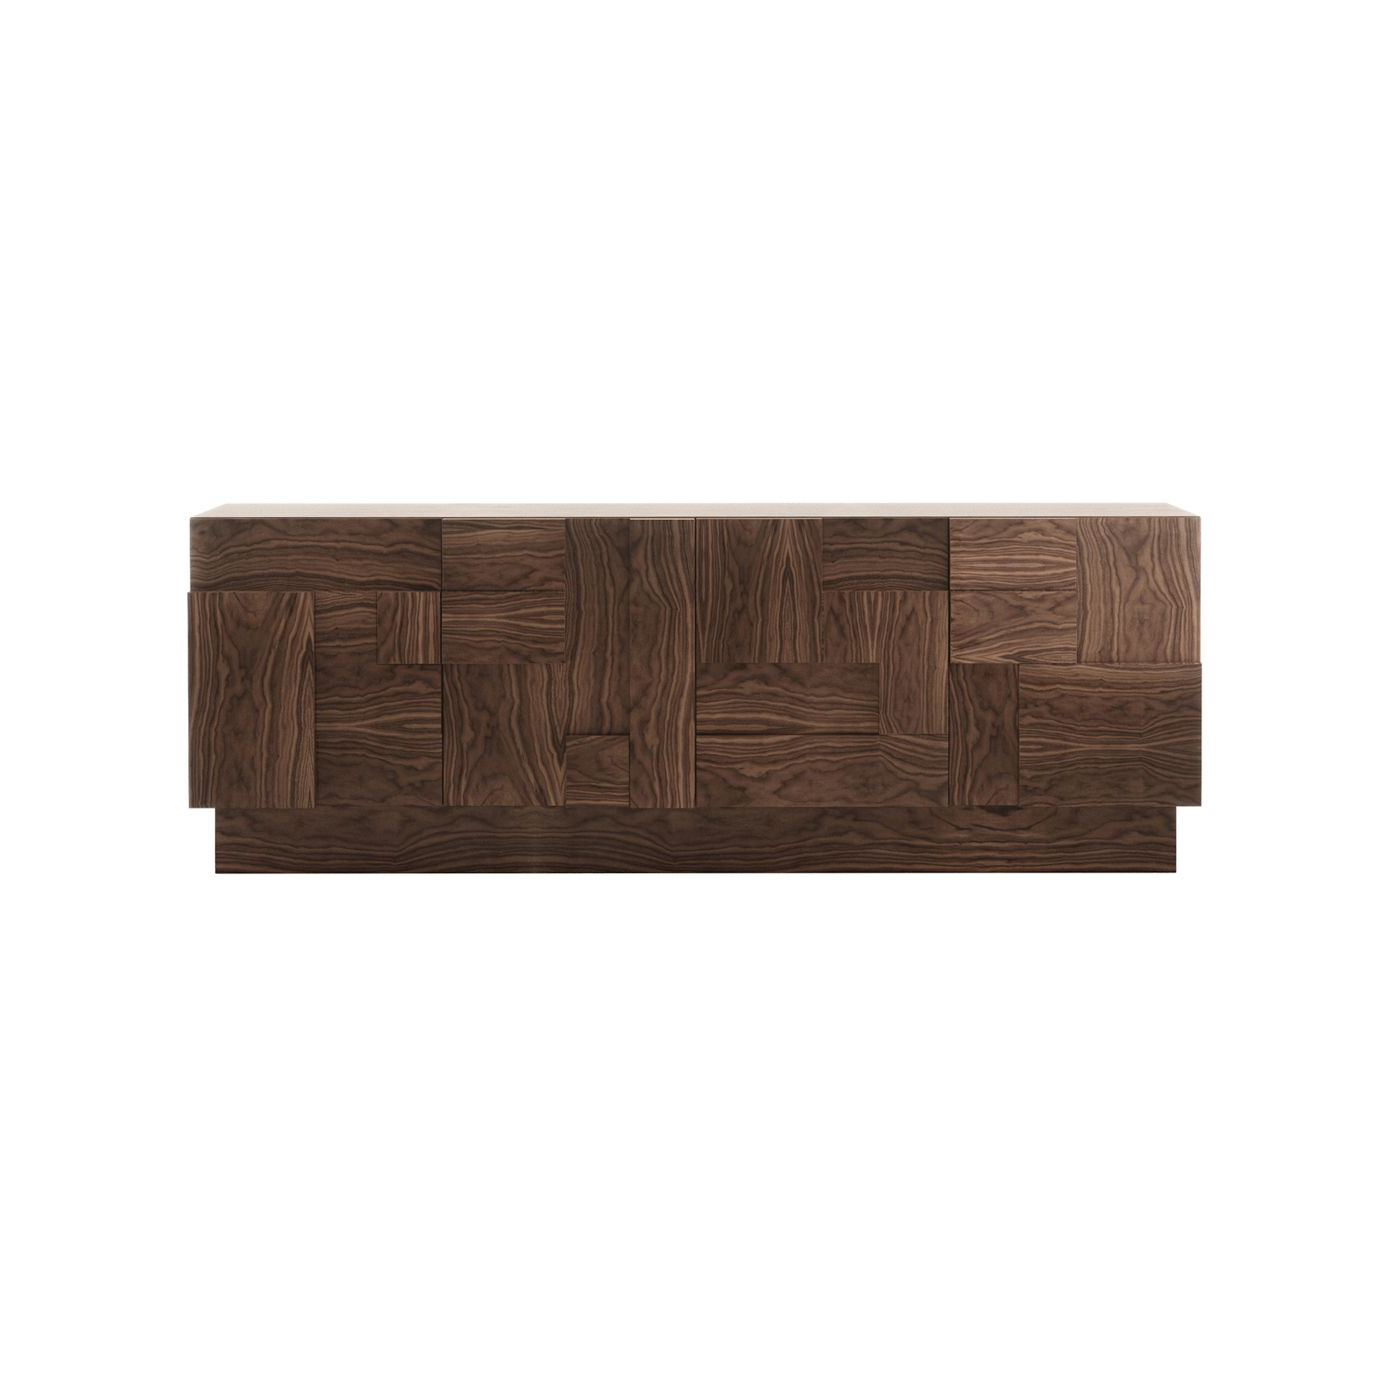 Decorar A Vida This Stunning Wooden Sideboard Has Four Intended For Ironwood 4 Door Sideboards (Gallery 5 of 20)